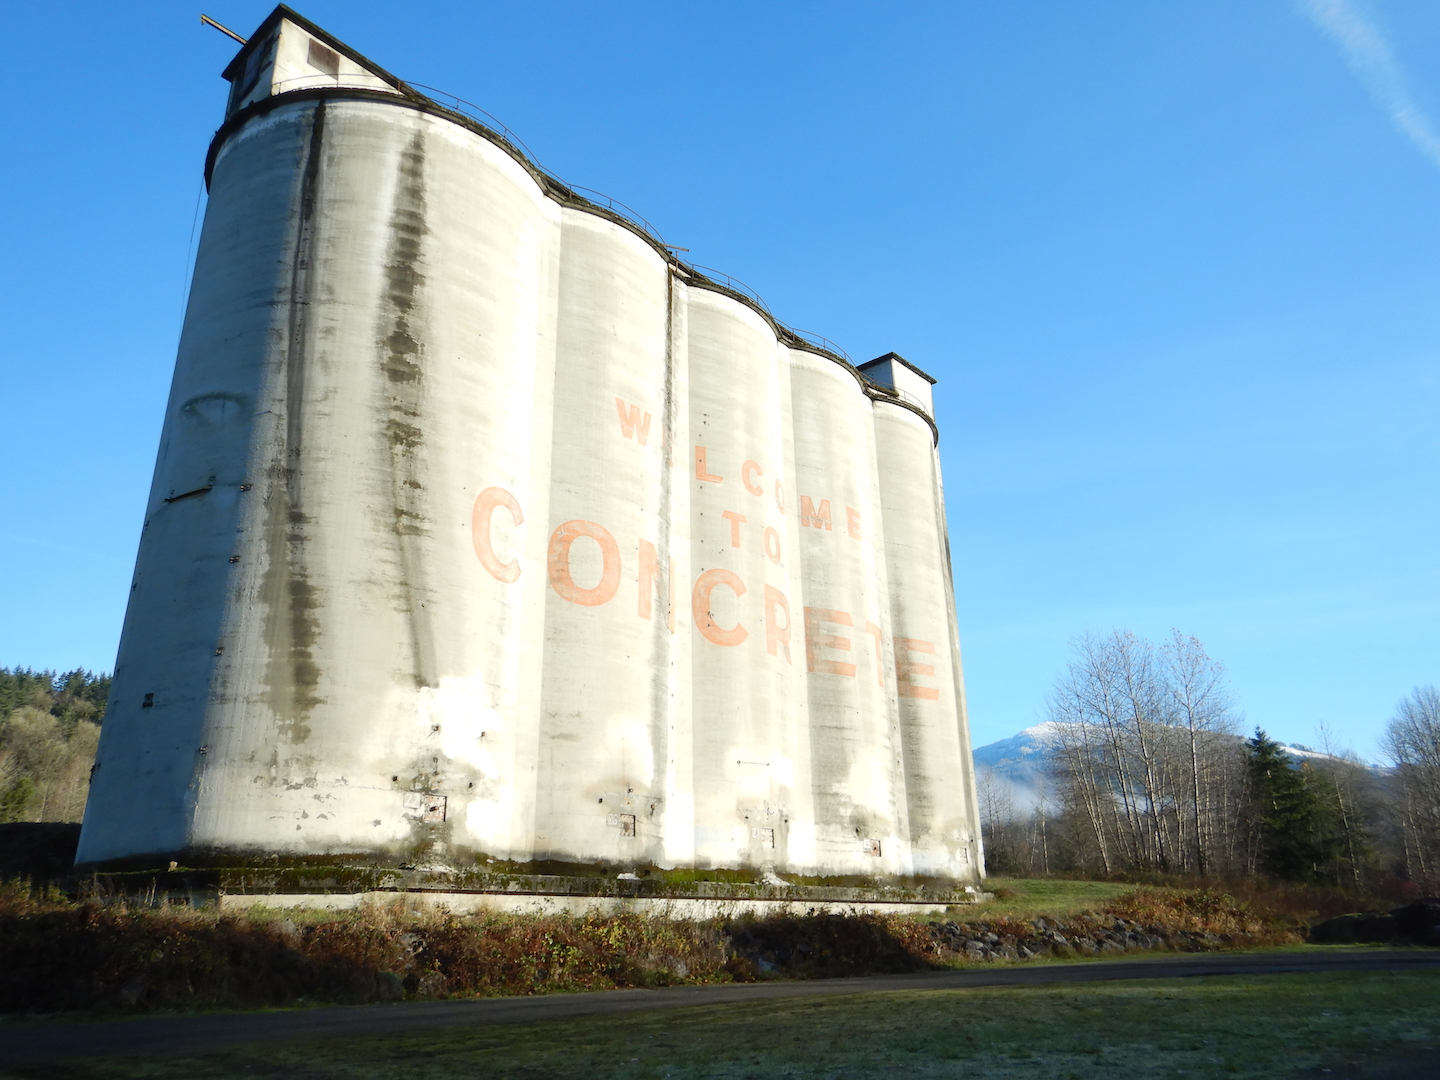 Concrete silos. Text on silos reads,